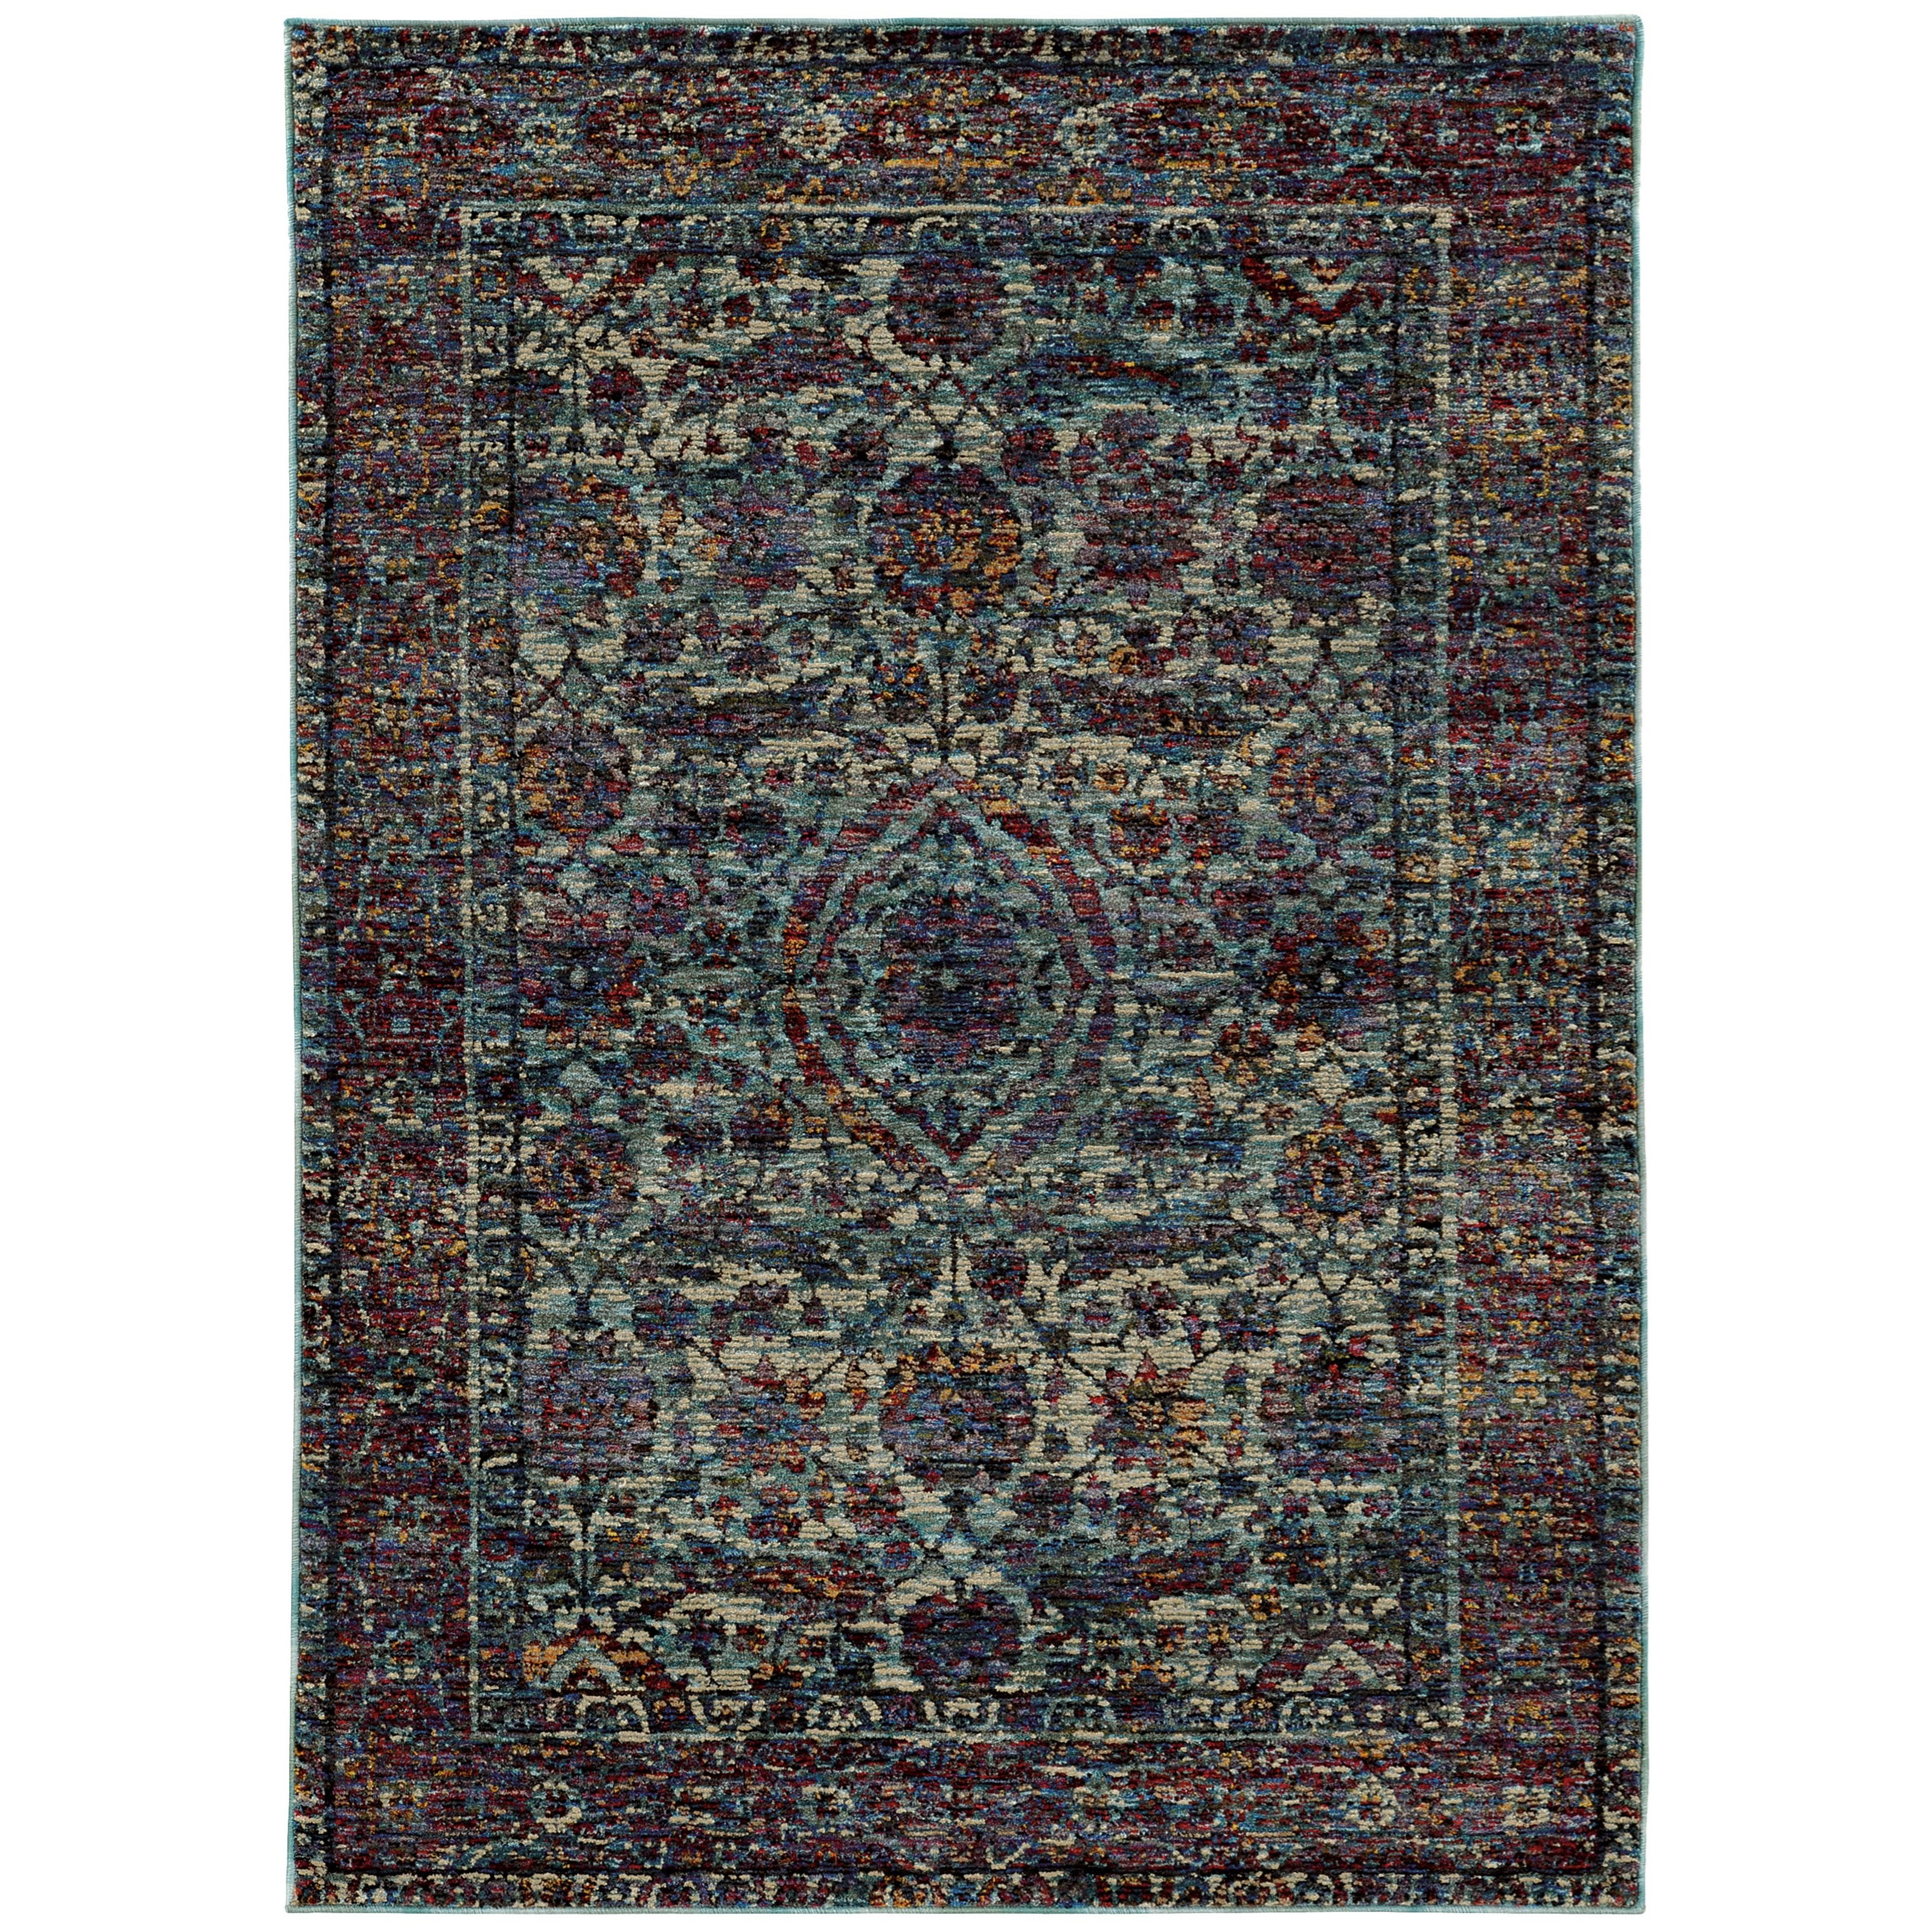 "Andorra 10' 0"" X 13' 2"" Rectangle Rug by Oriental Weavers at Novello Home Furnishings"